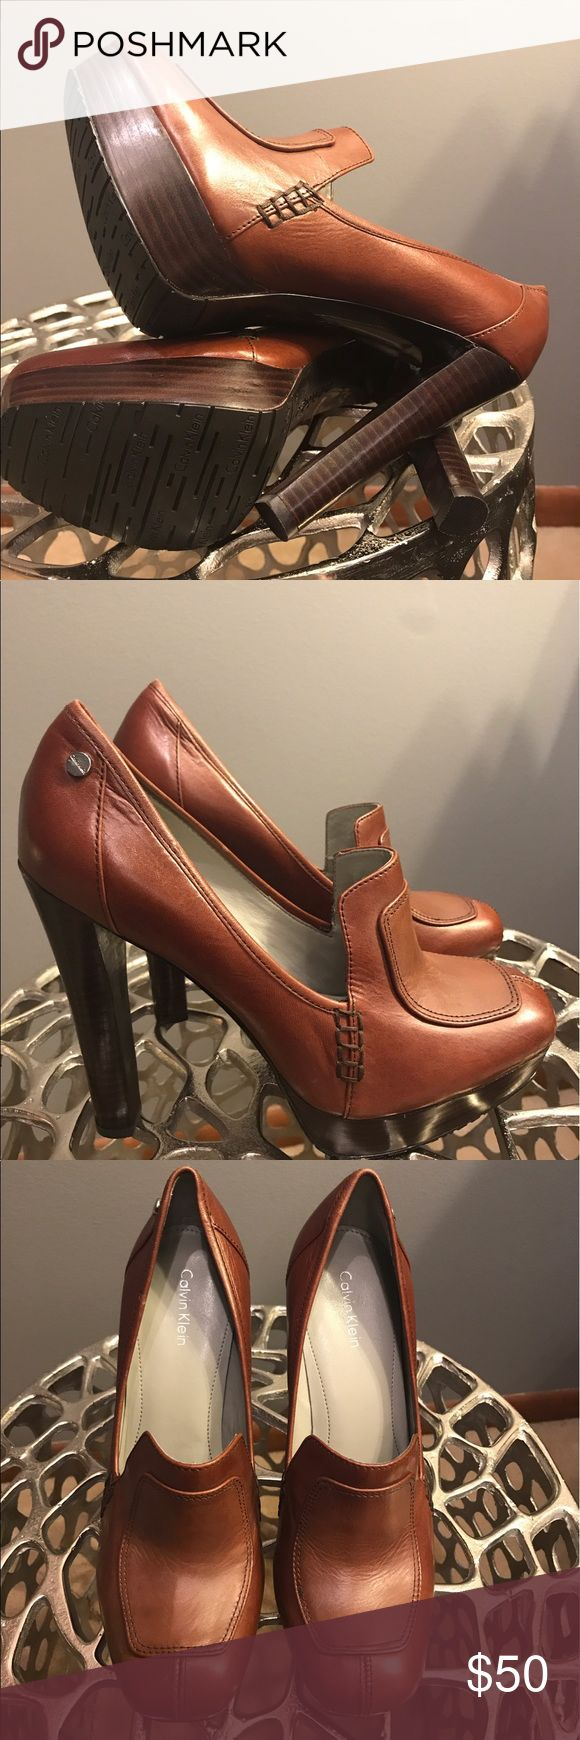 Beautiful Calvin Klein High Heeled Loafer NWOT- Calvin Klein cognac high heeled platform loafer. This shoe is only for those of you who truly know how to wear high heeled shoes. No amateurs allowed with this 4.5 inch heel. Shoe is in perfect condition and waiting for you. Calvin Klein Shoes Heels